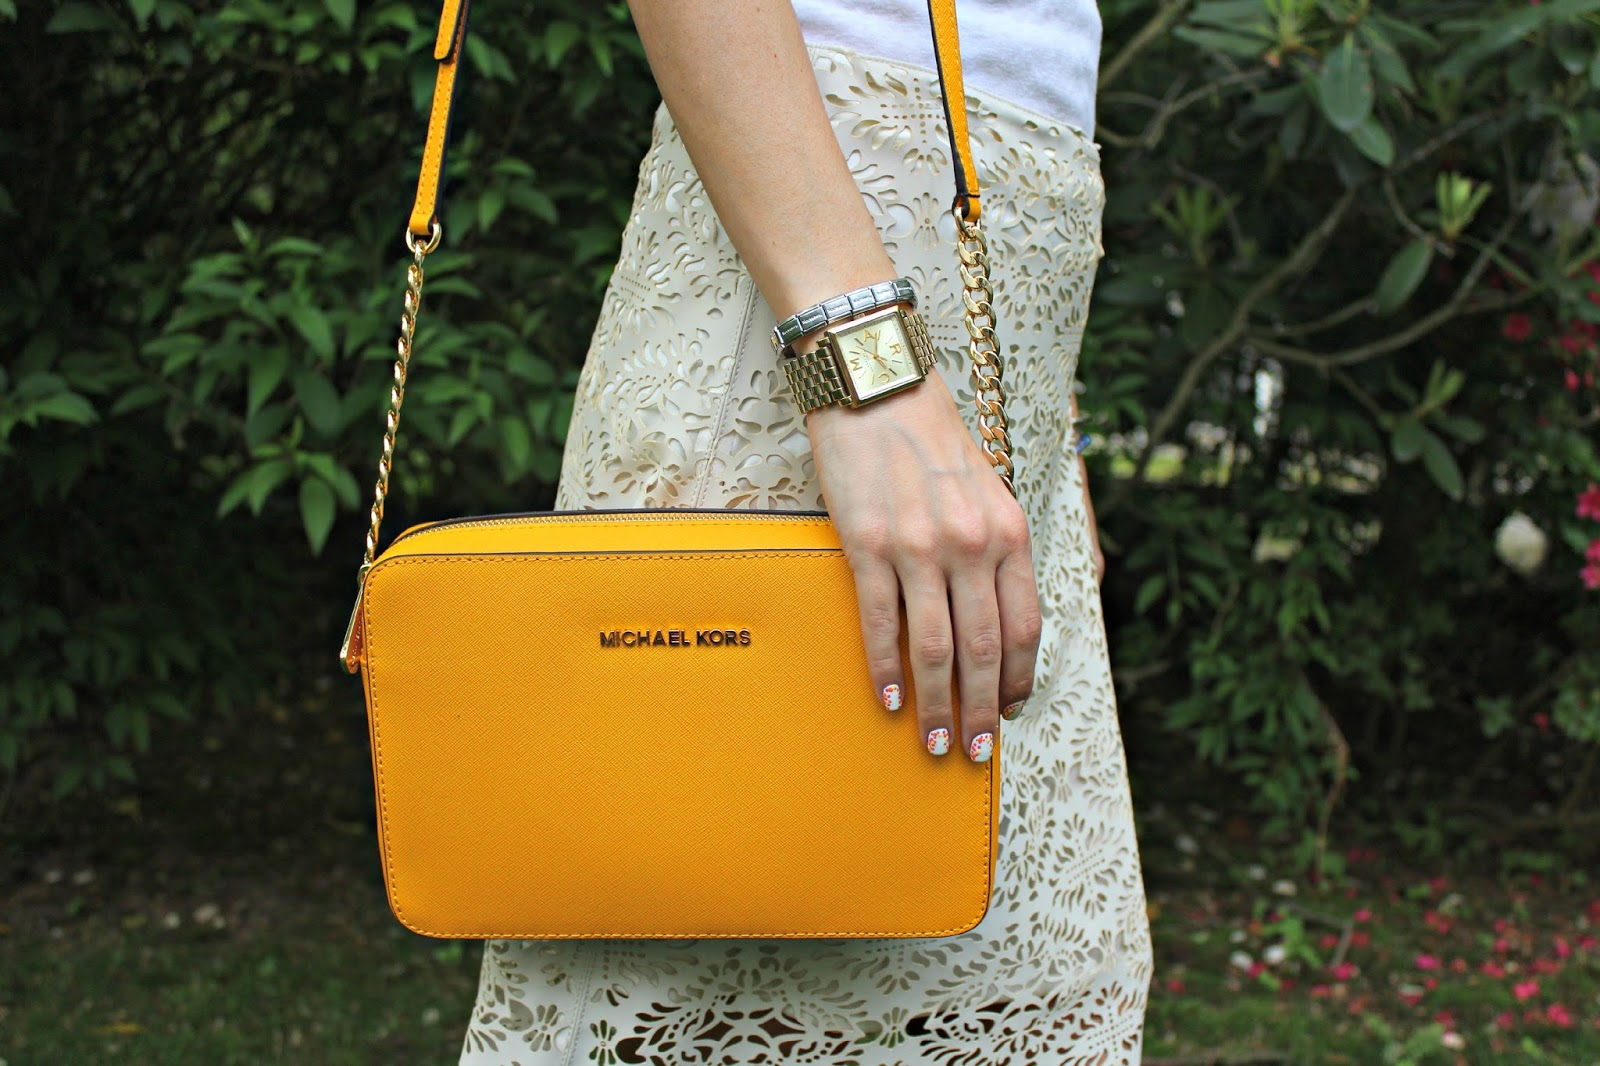 michael kors yellow crossbody bag